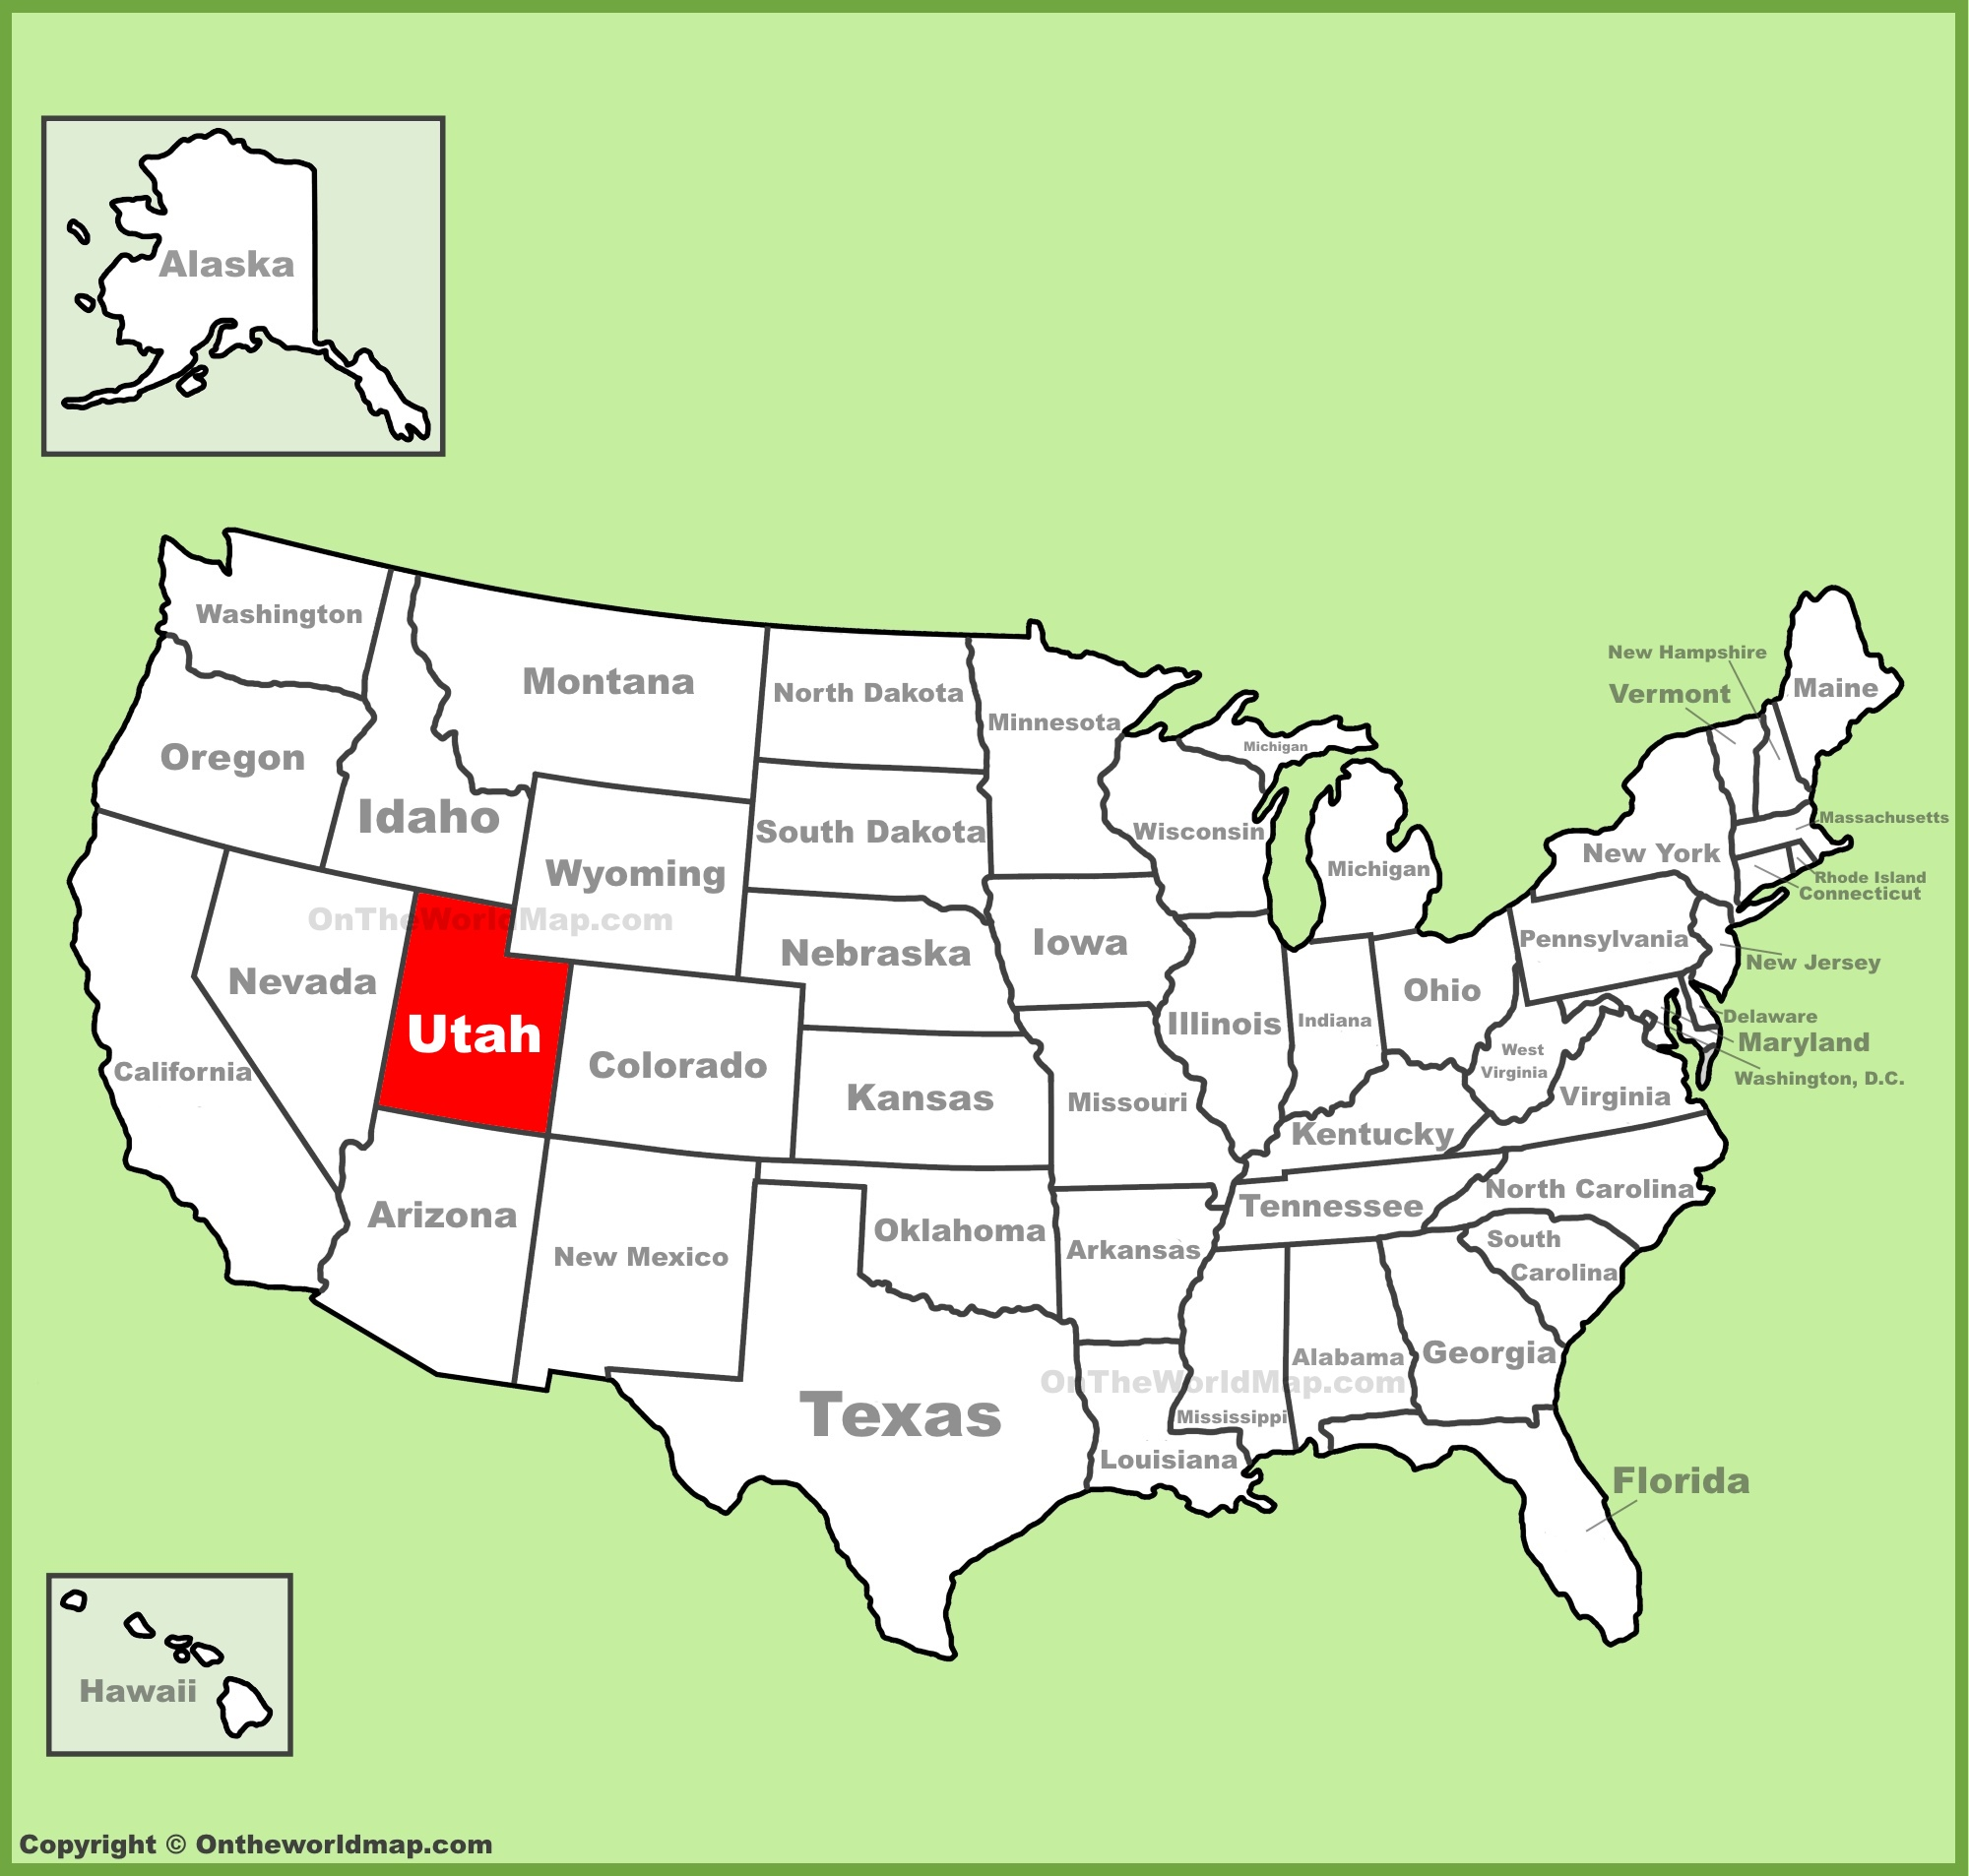 Utah Location On The US Map - Bank of america us map locations